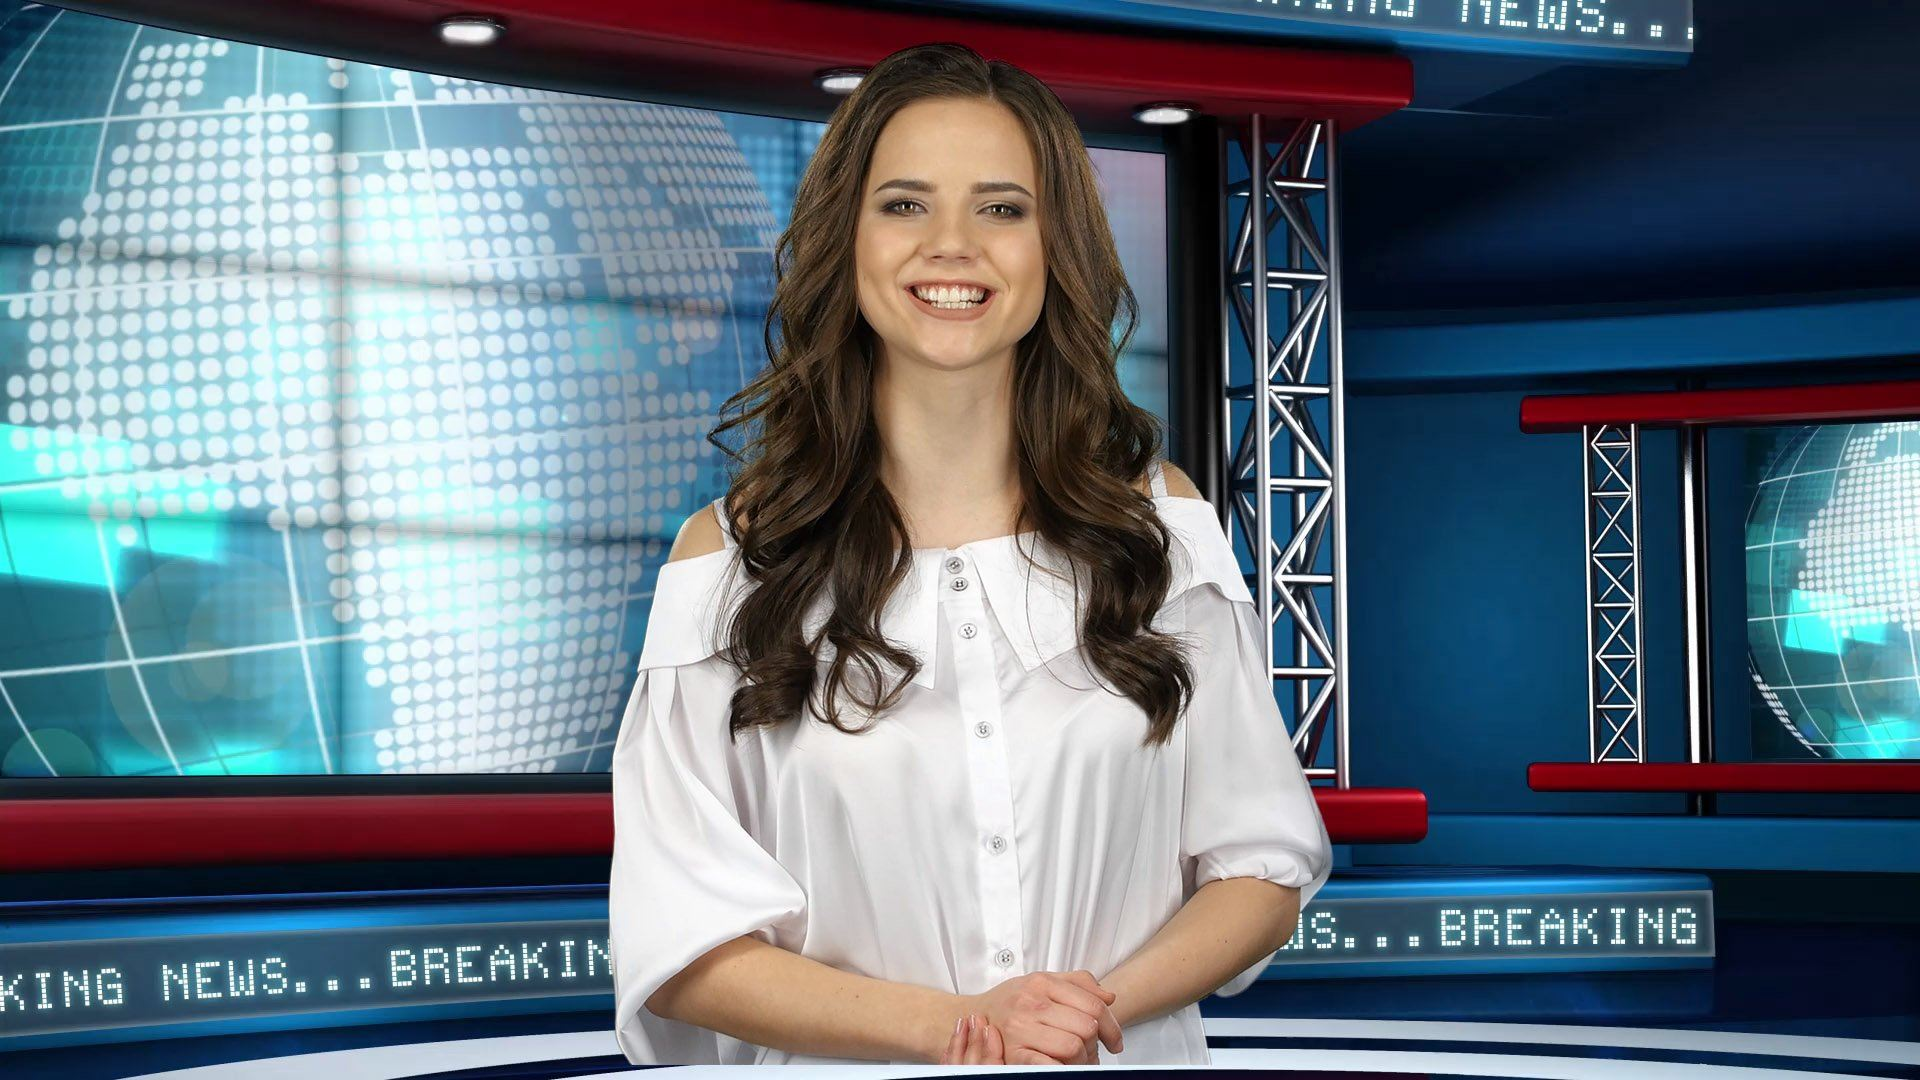 Global News Virtual Studio Set [ANGLE 3]